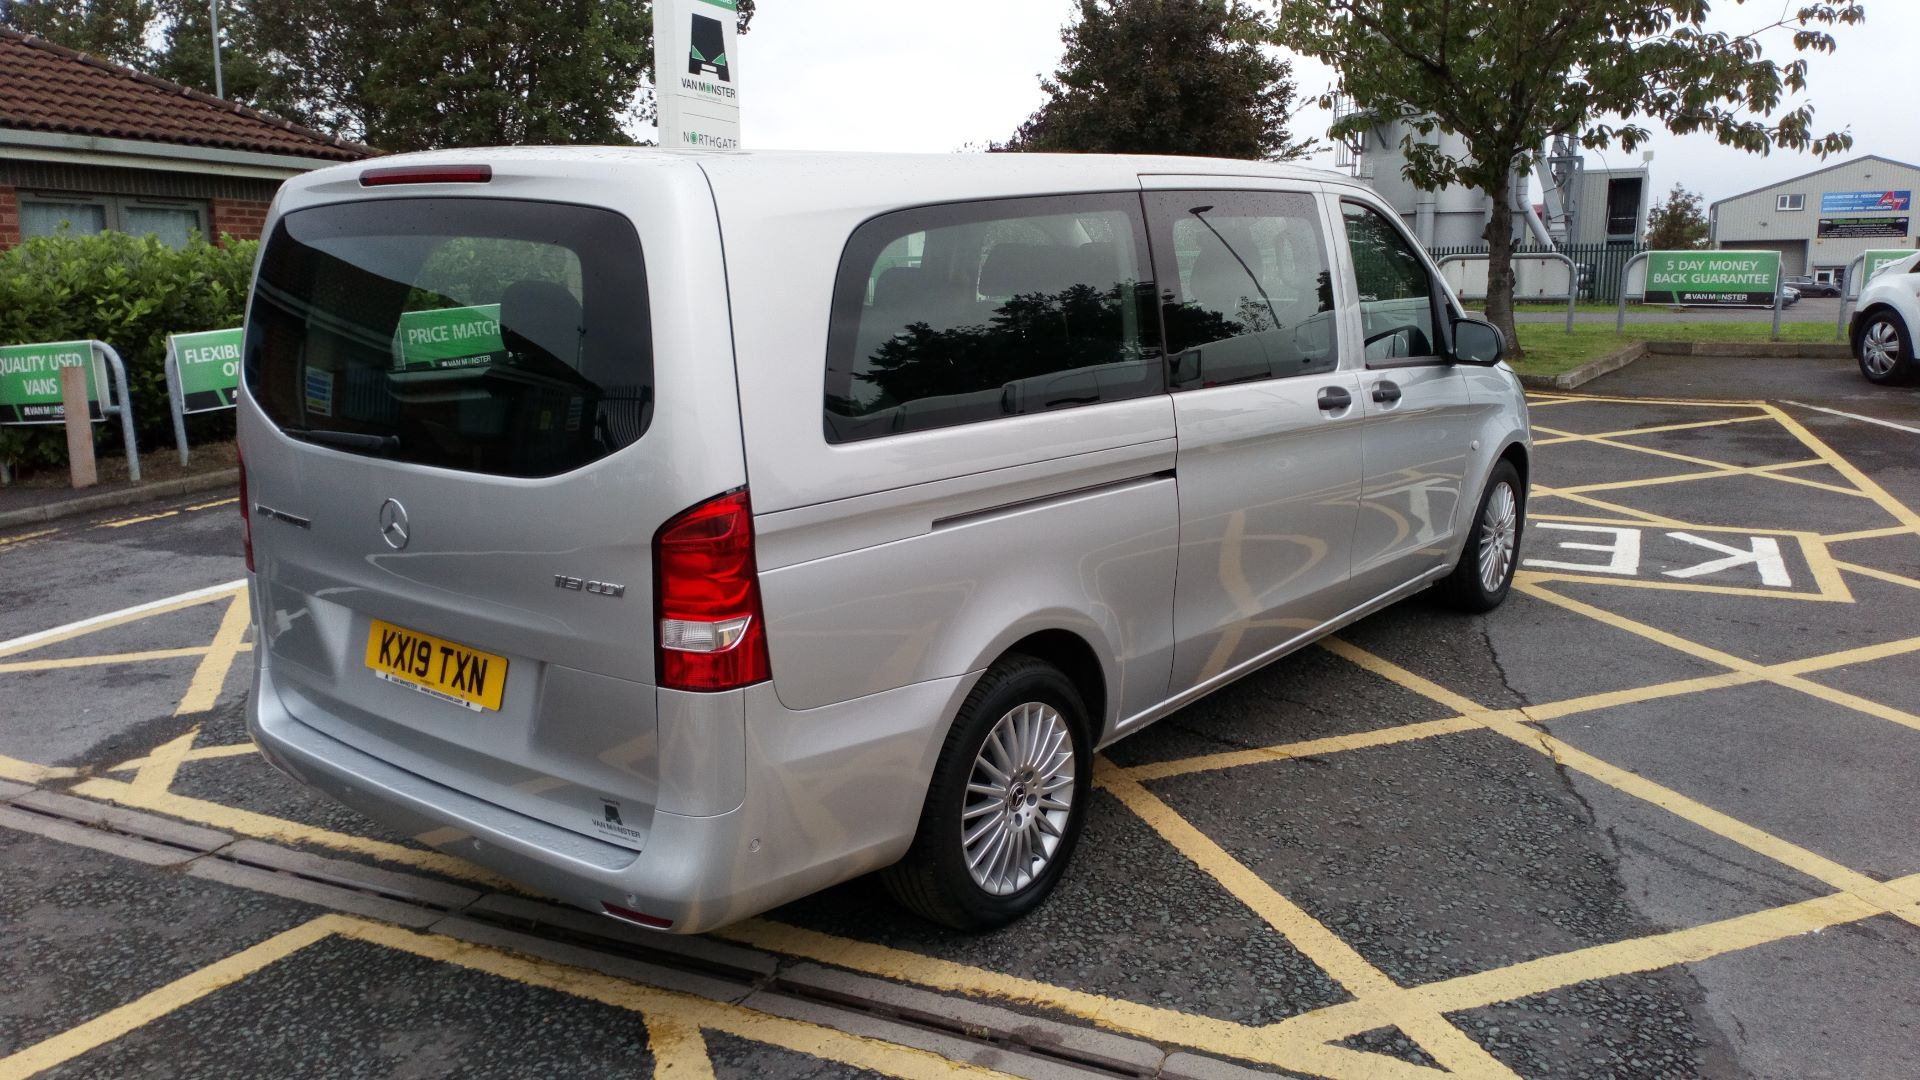 2019 Mercedes-Benz Vito 119 Bluetec Select 8-Seater 7G-Tronic (KX19TXN) Thumbnail 7